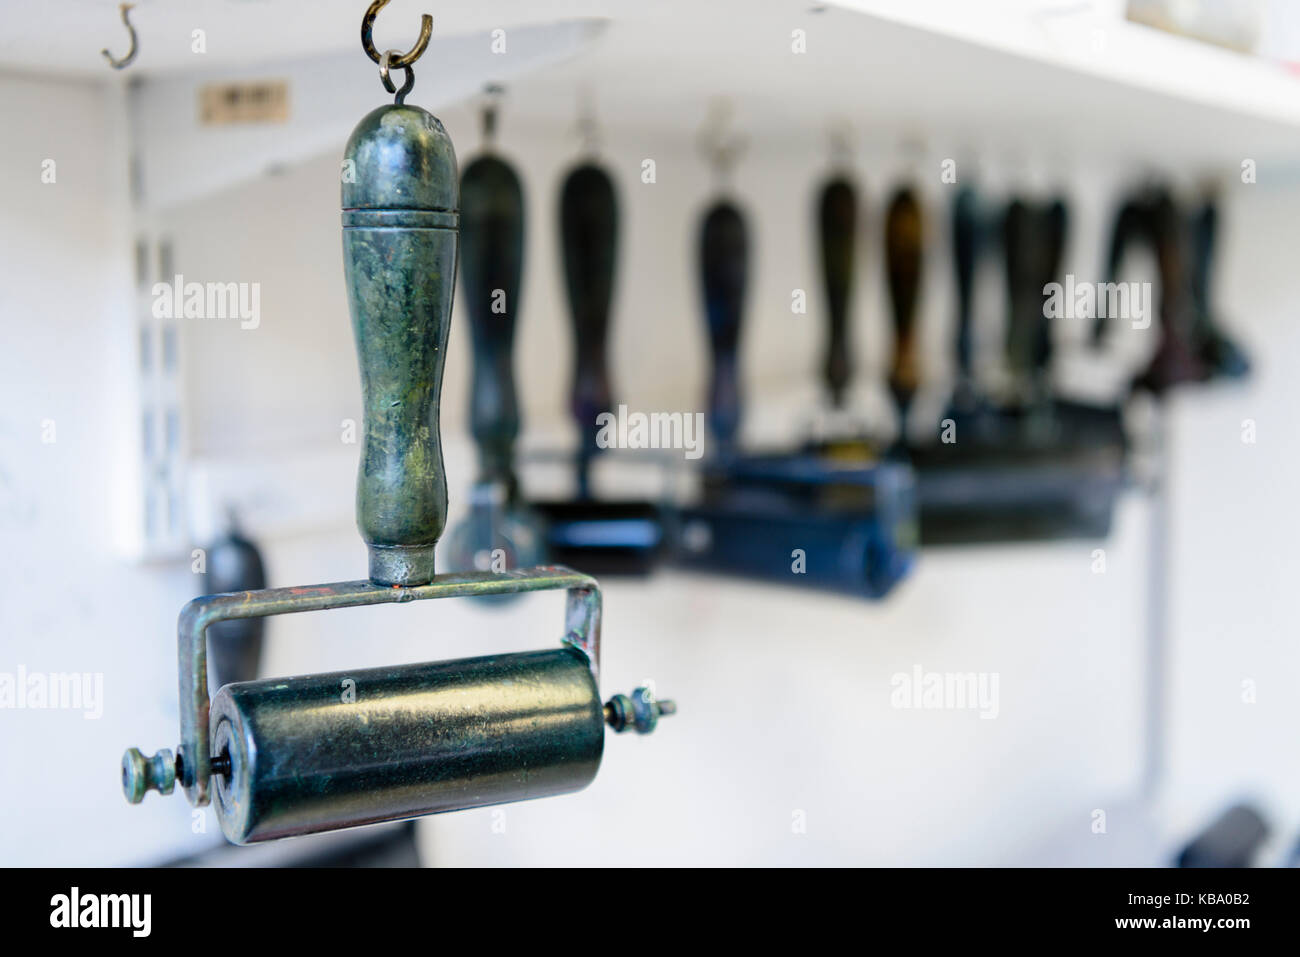 Ink rollers hanging in a printer's workshop. - Stock Image